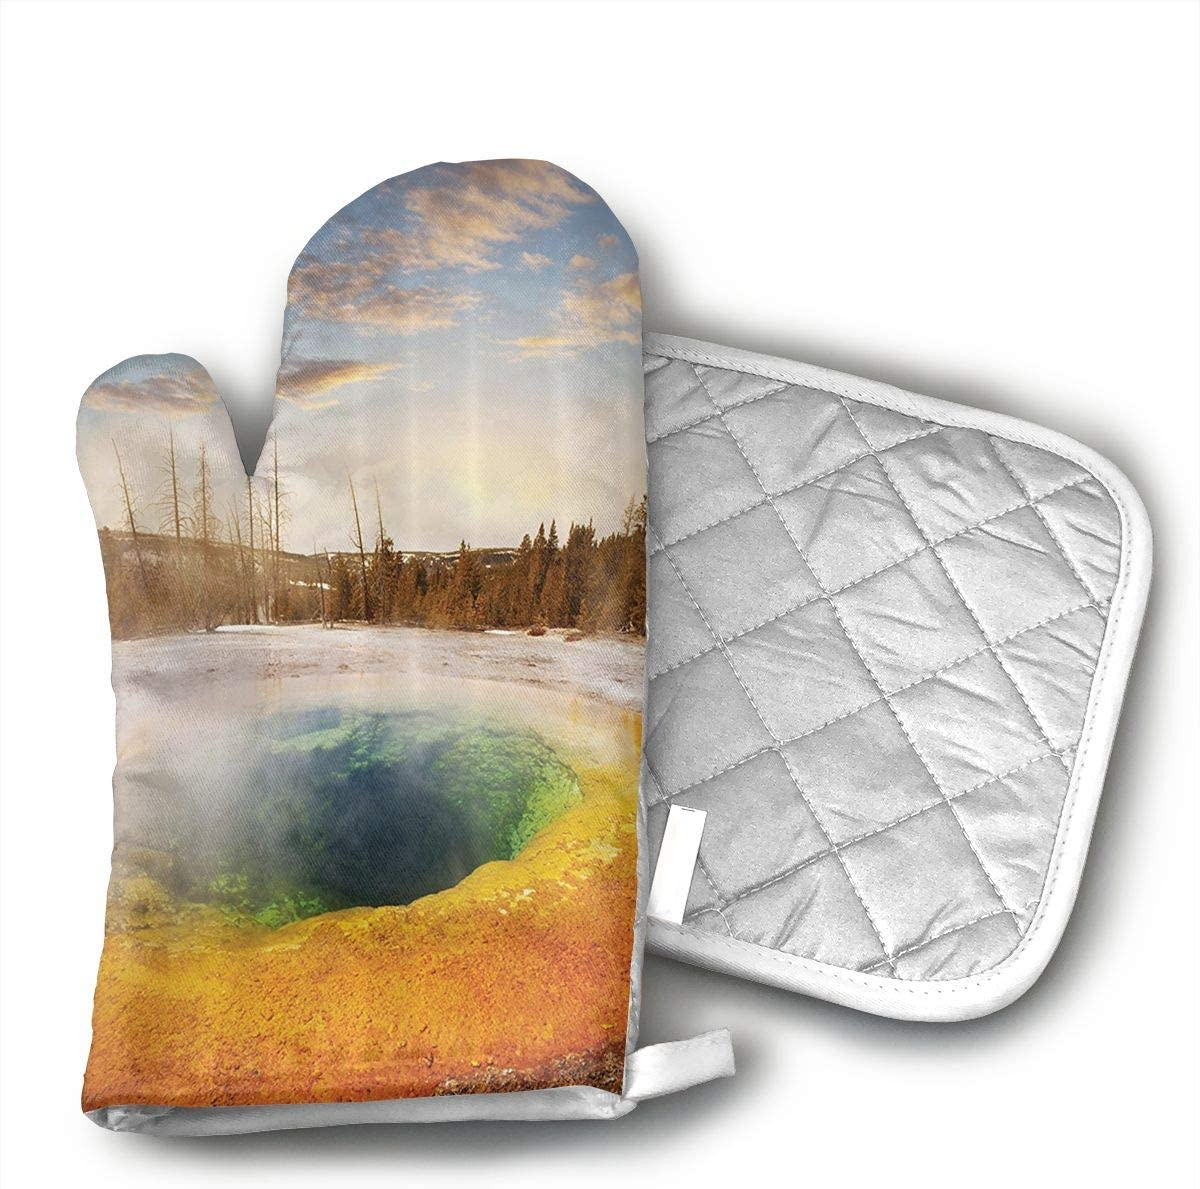 O1rY1bS Morning Glory Pool in Yellowstone National Park Oven Mitts BBQ Oven Gloves Baking Pot Mitts for Kitchen Cooking